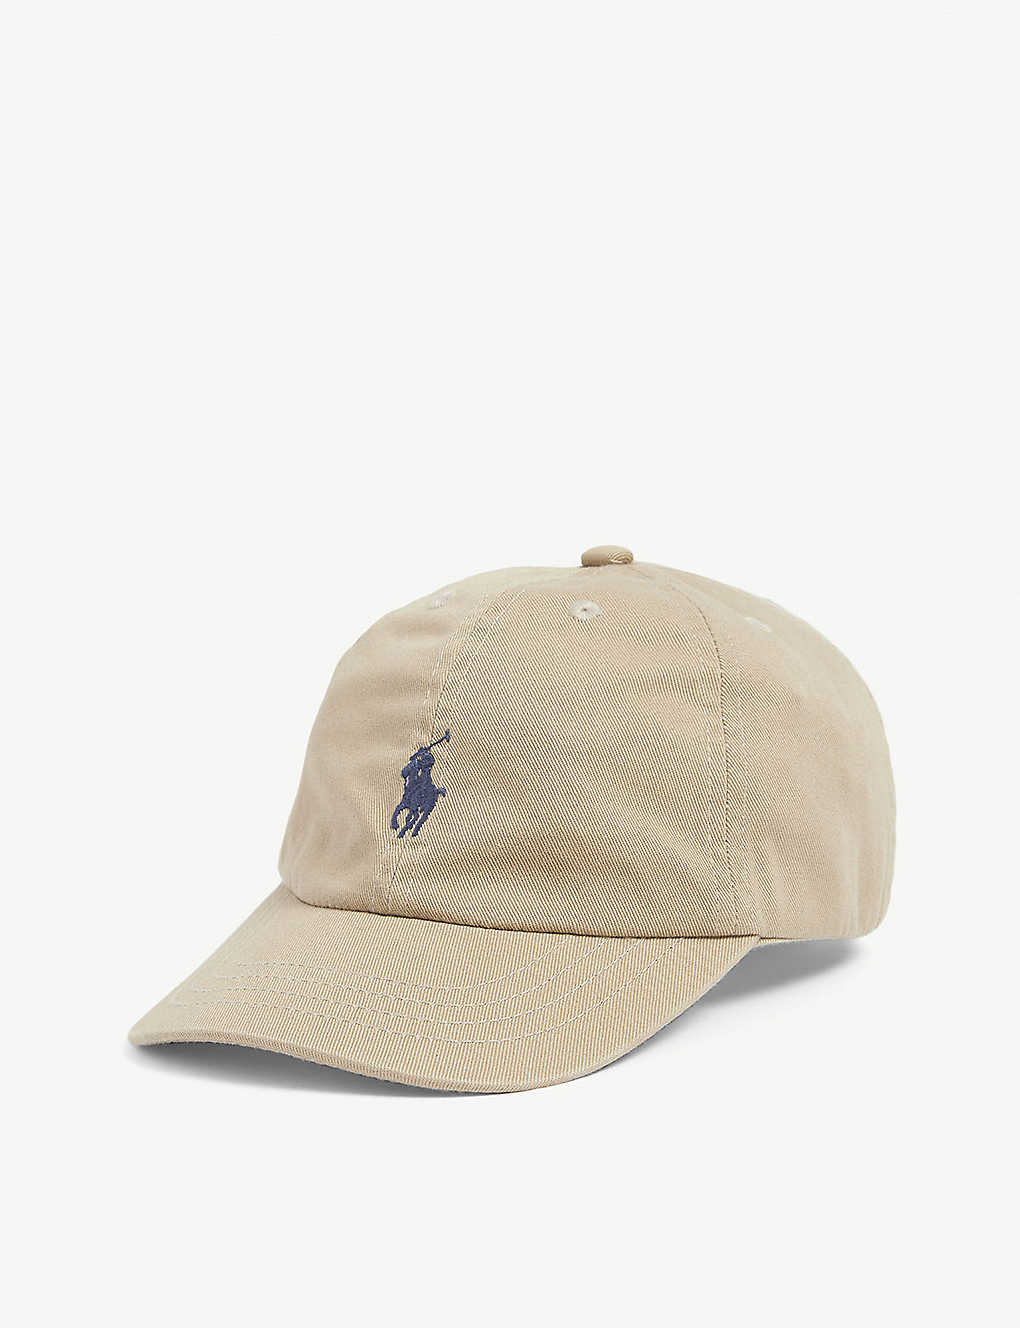 RALPH LAUREN: Kids logo-embroidered cotton baseball cap one size